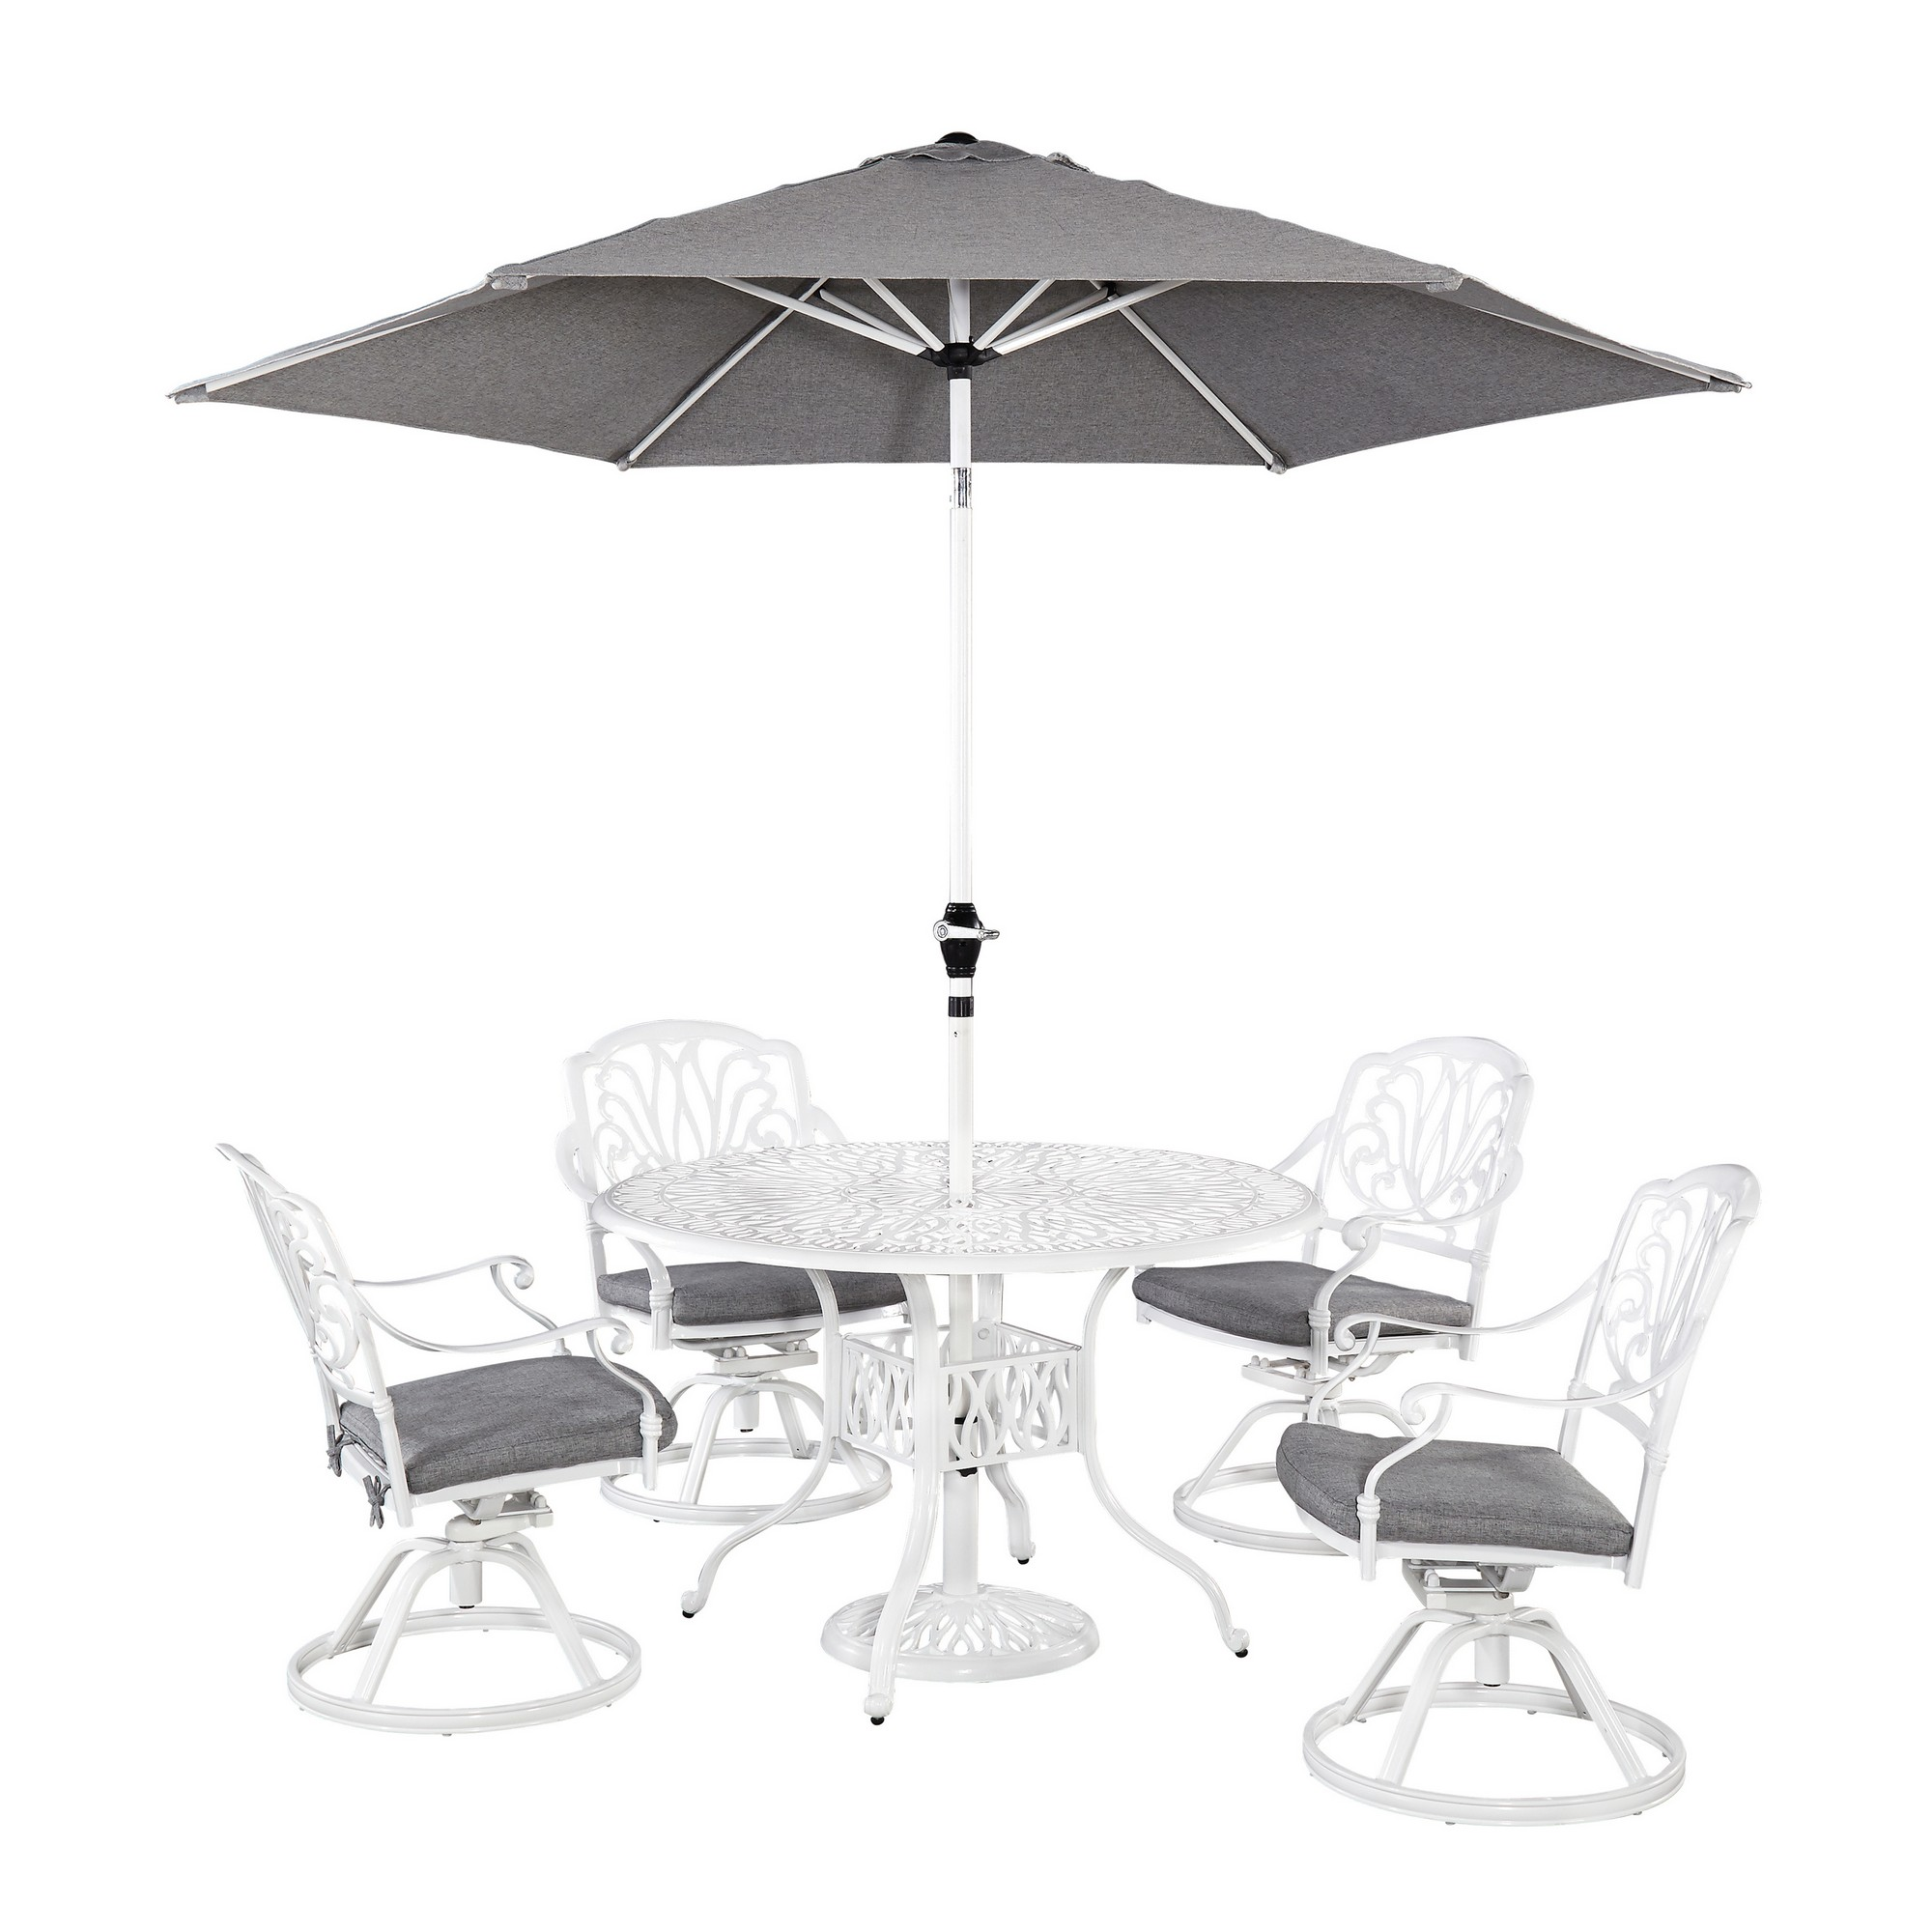 Capri 6 Piece Outdoor Dining Set by homestyles at Sam Levitz Outlet